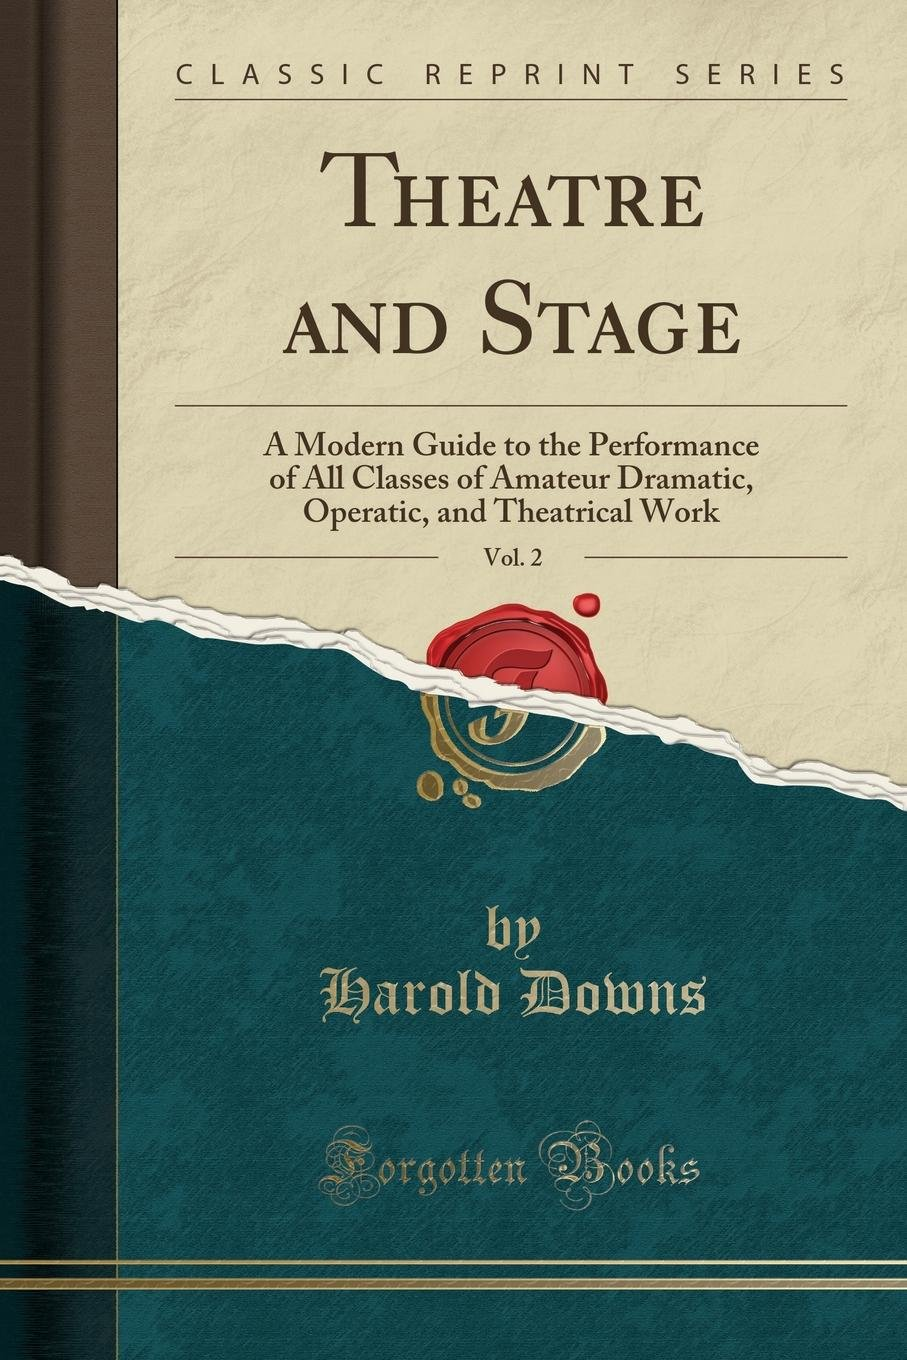 Download Theatre and Stage, Vol. 2: A Modern Guide to the Performance of All Classes of Amateur Dramatic, Operatic, and Theatrical Work (Classic Reprint) PDF